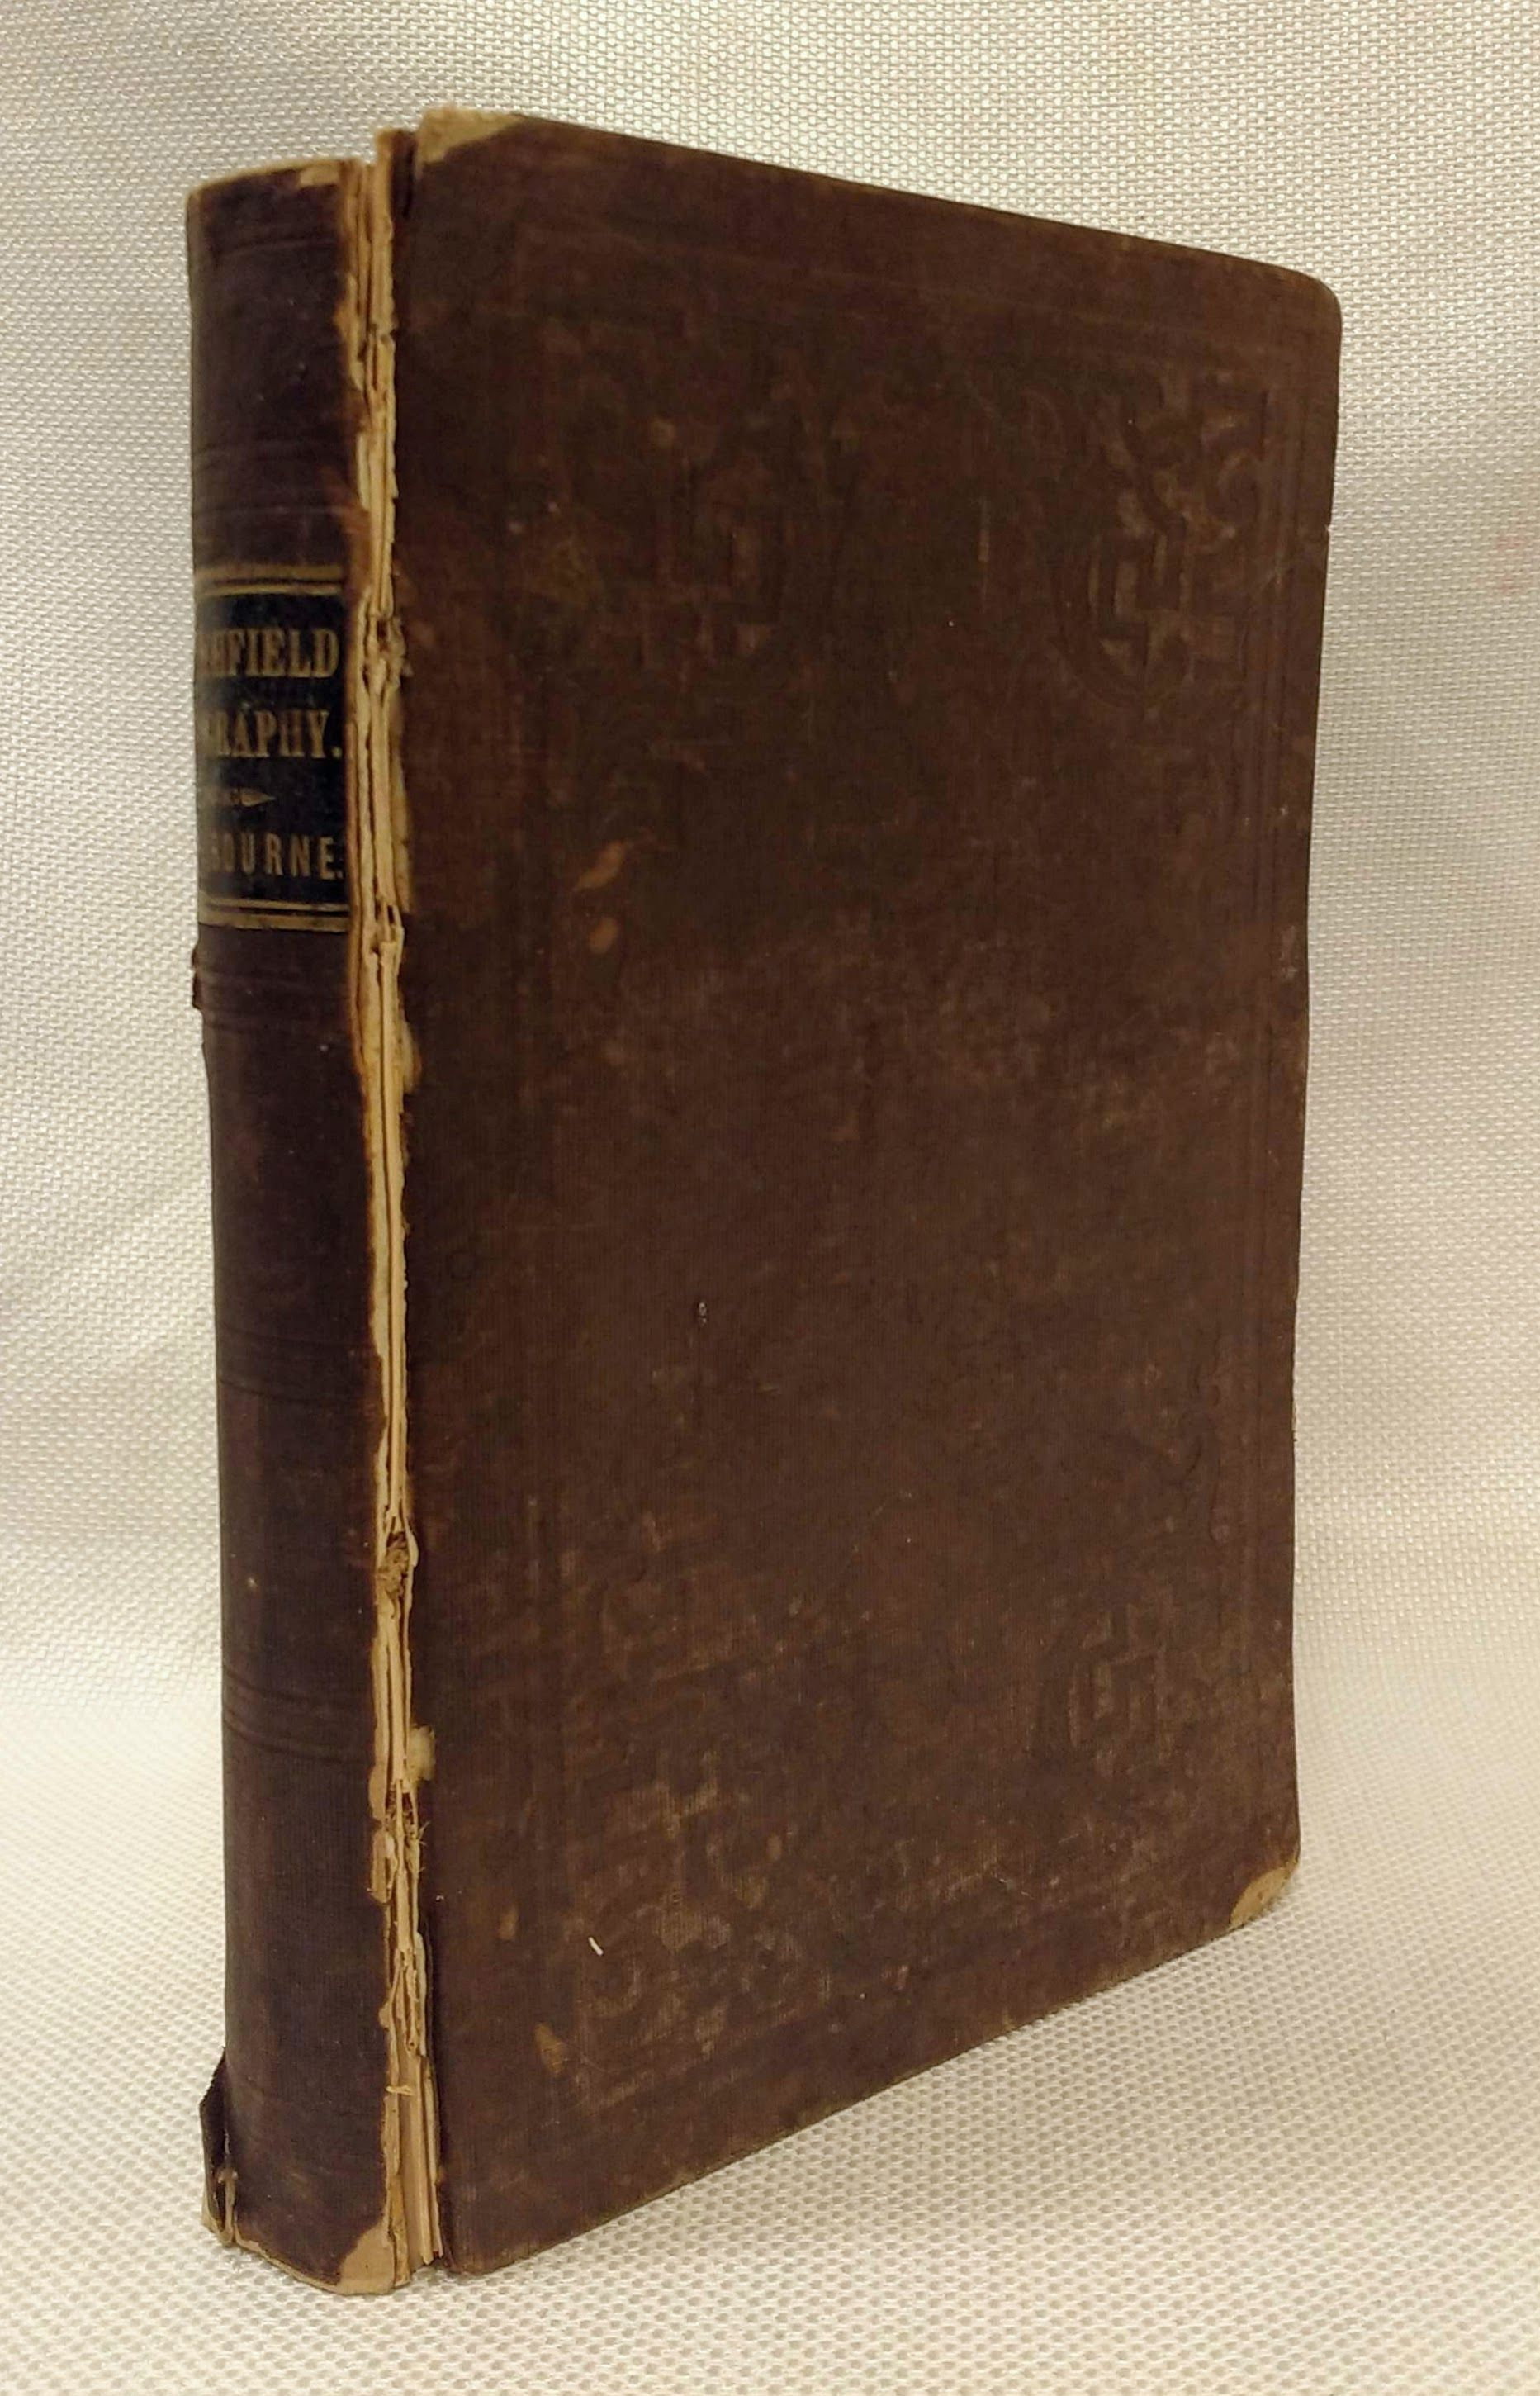 A Biographical History of the County of Litchfield, Connecticut Comprising Biographical Sketches Of Distinguished Natives And Residents Of The County; Together With Complete Lists Of The Judges Of The County Court, Justices Of The Quorum, County Commissioners, Judges Of Probate, Sheriffs, Senators, Etc. From The Organization Of The County To The Present Time [First edition, 1851], Kilbourne, Payne Kenyon